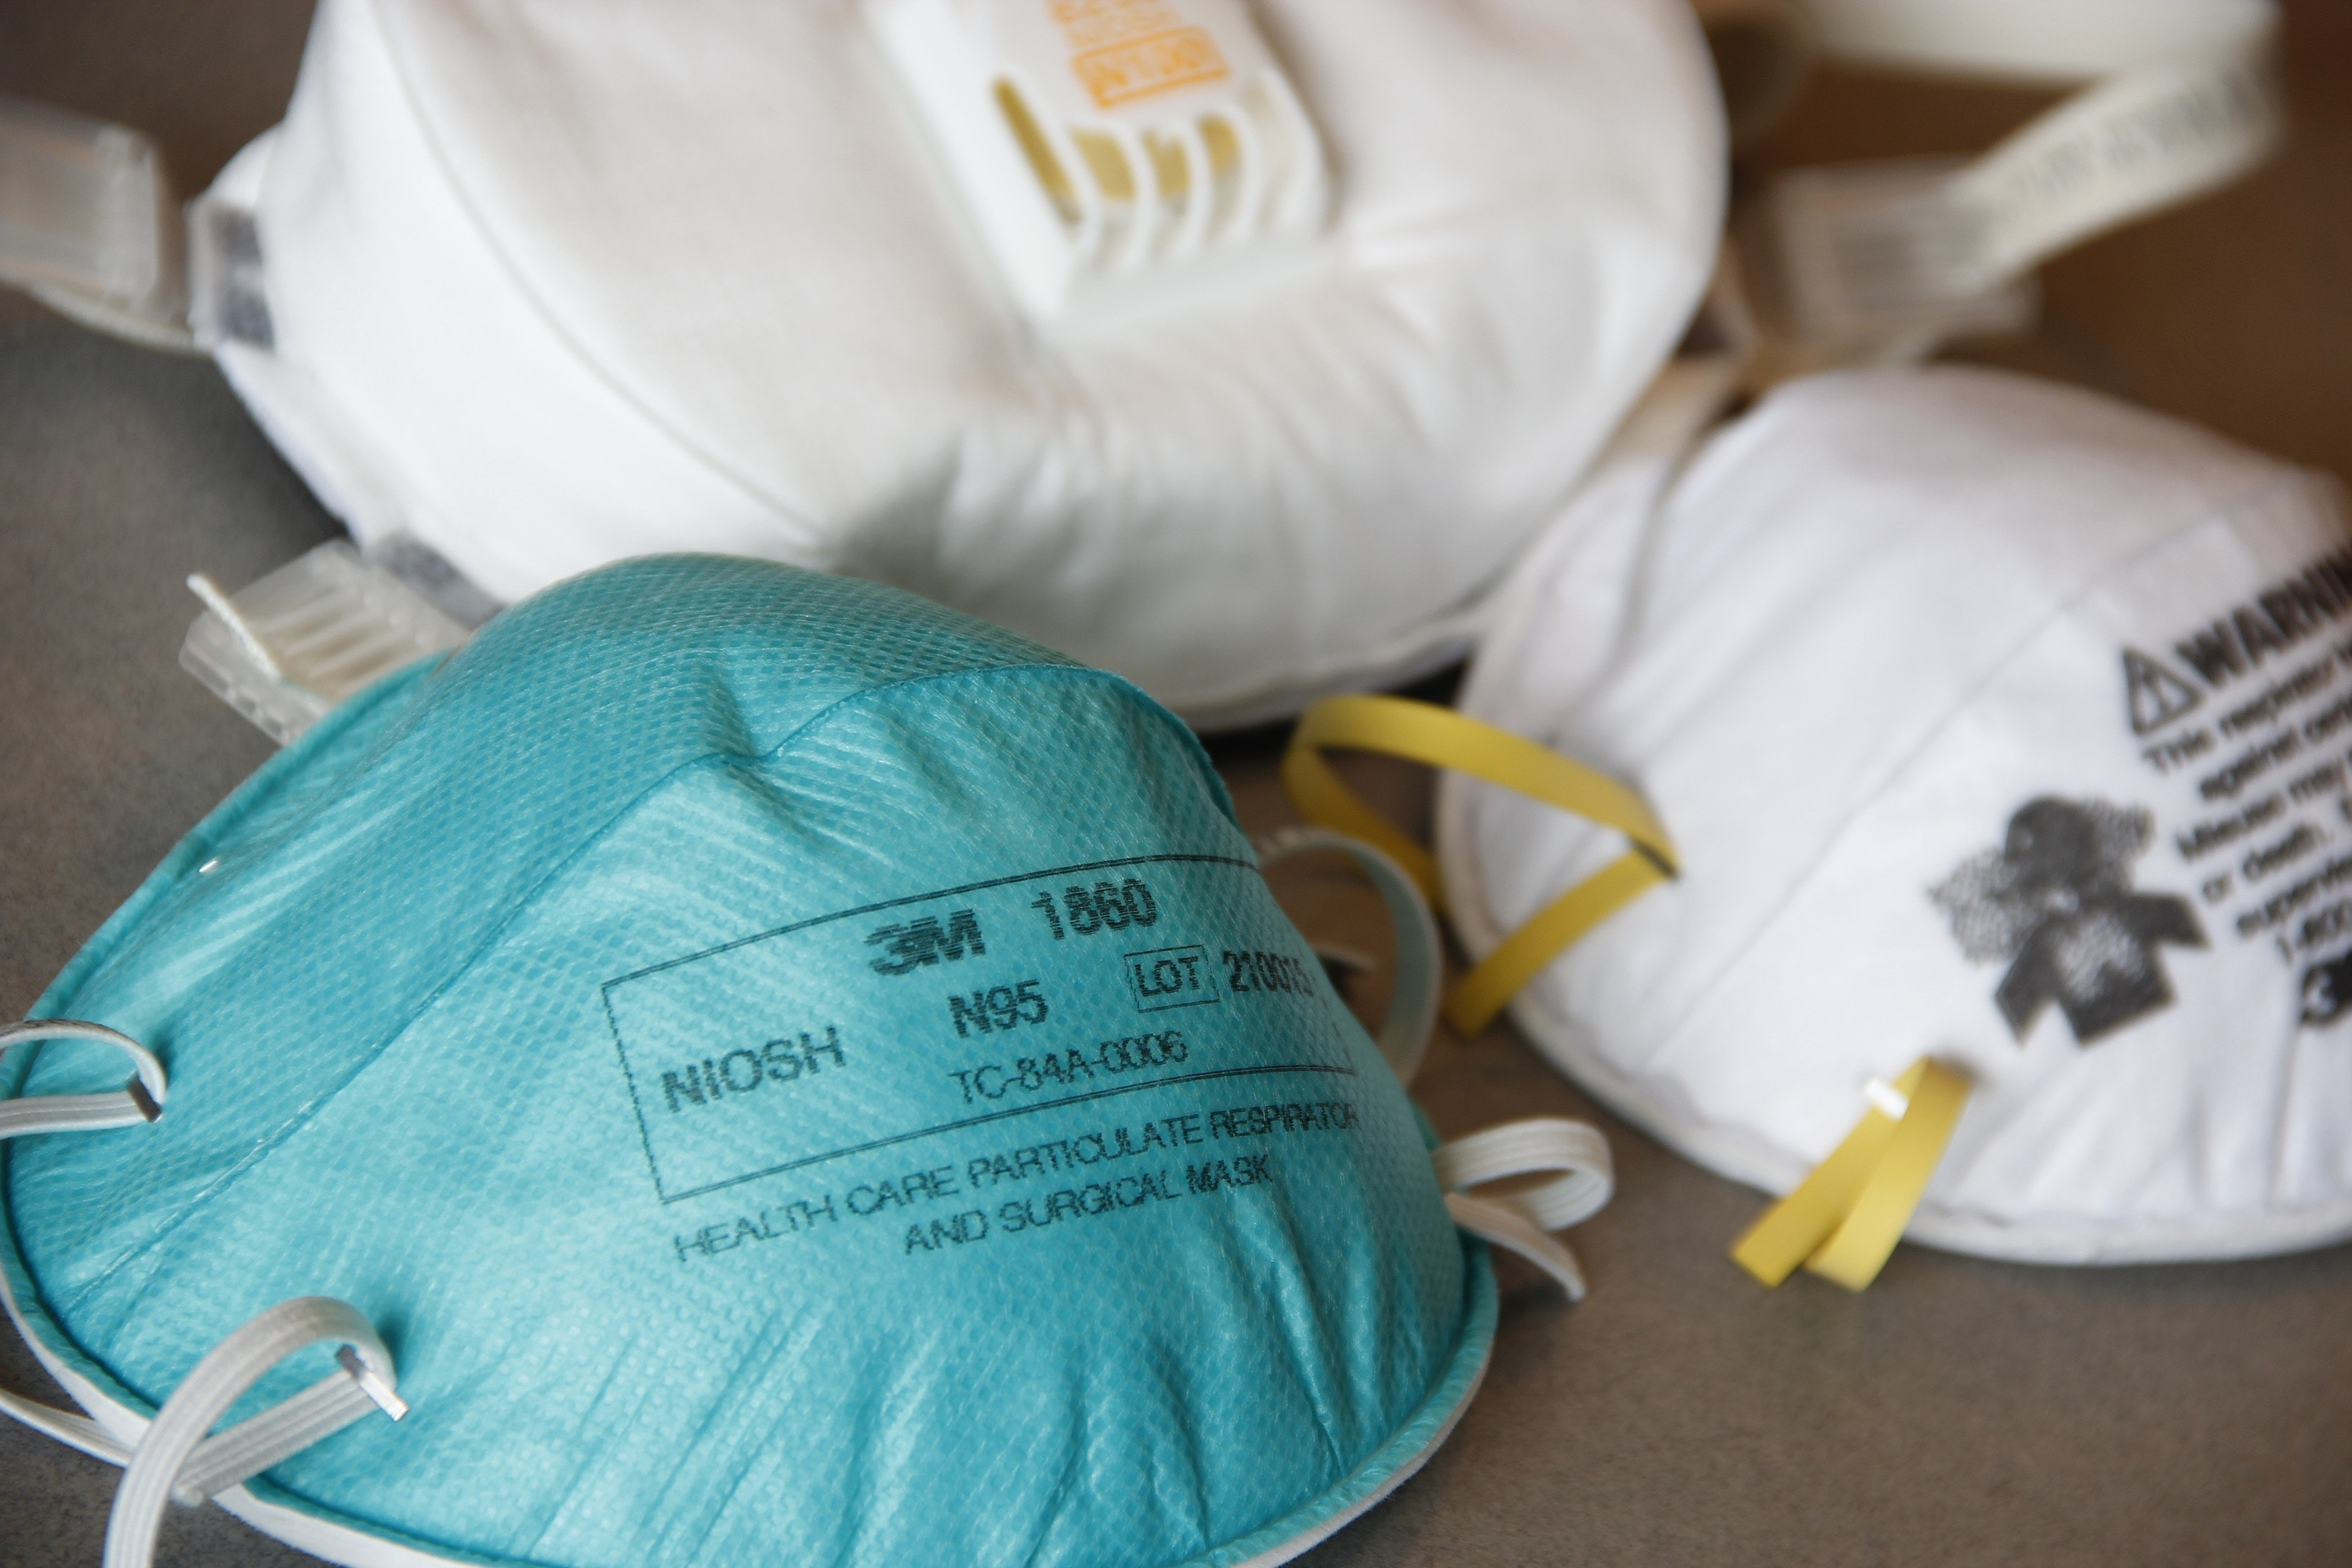 Questions you need to ask to ensure that a PPE Supplier is genuine